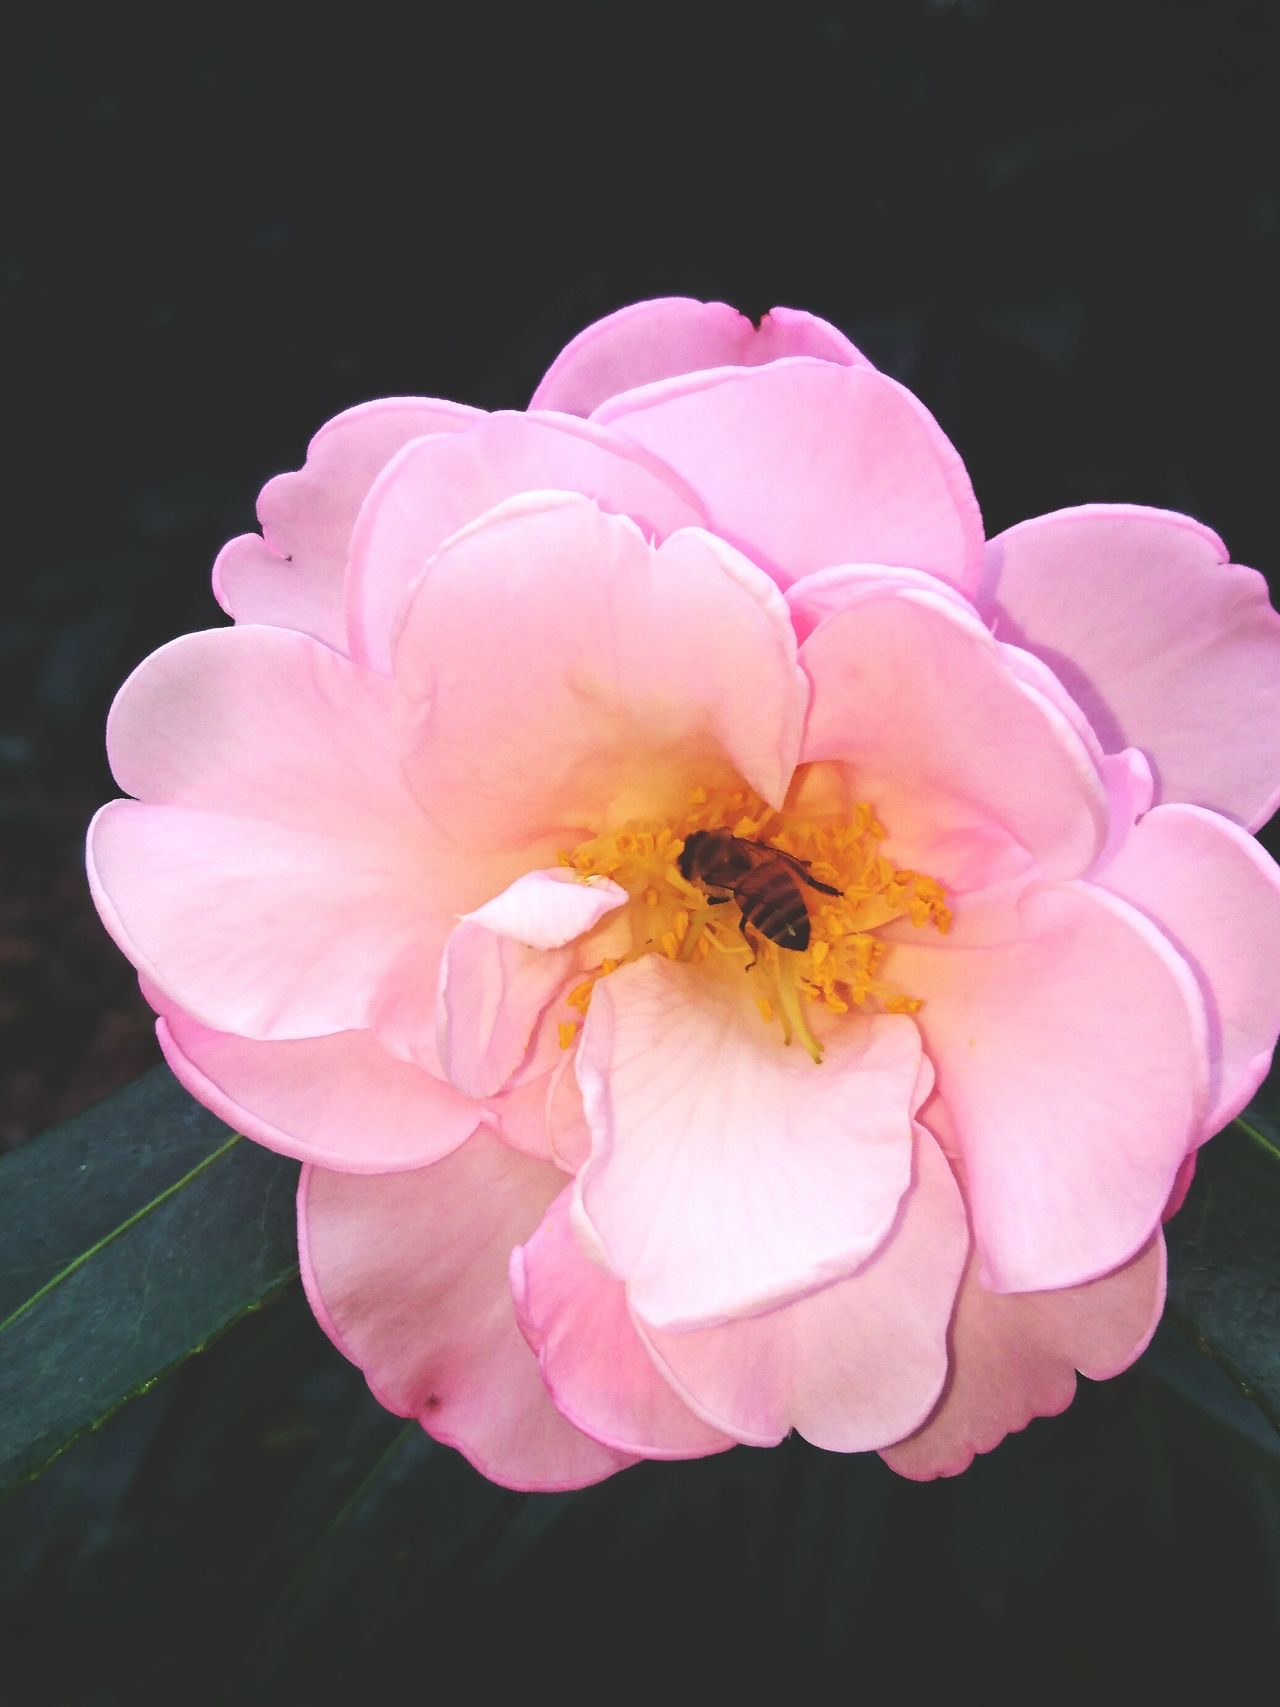 Camellia Flower Flower Nature Natureinaction Bee Bee And Flower Bee Pollinating Beautiful Nature Pink Flower